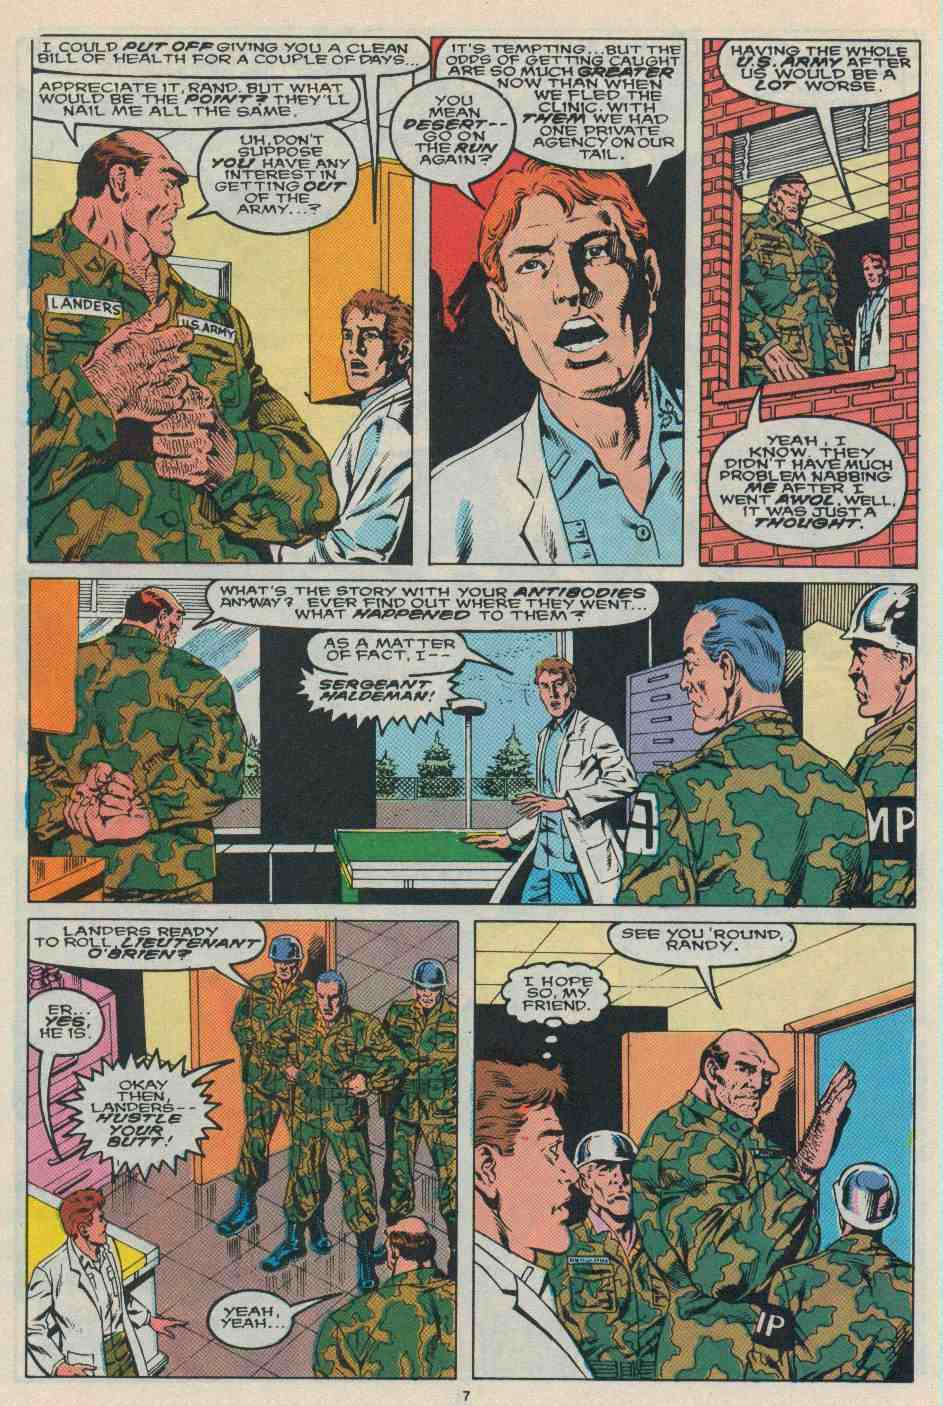 Read online DP7 comic -  Issue #26 - 8